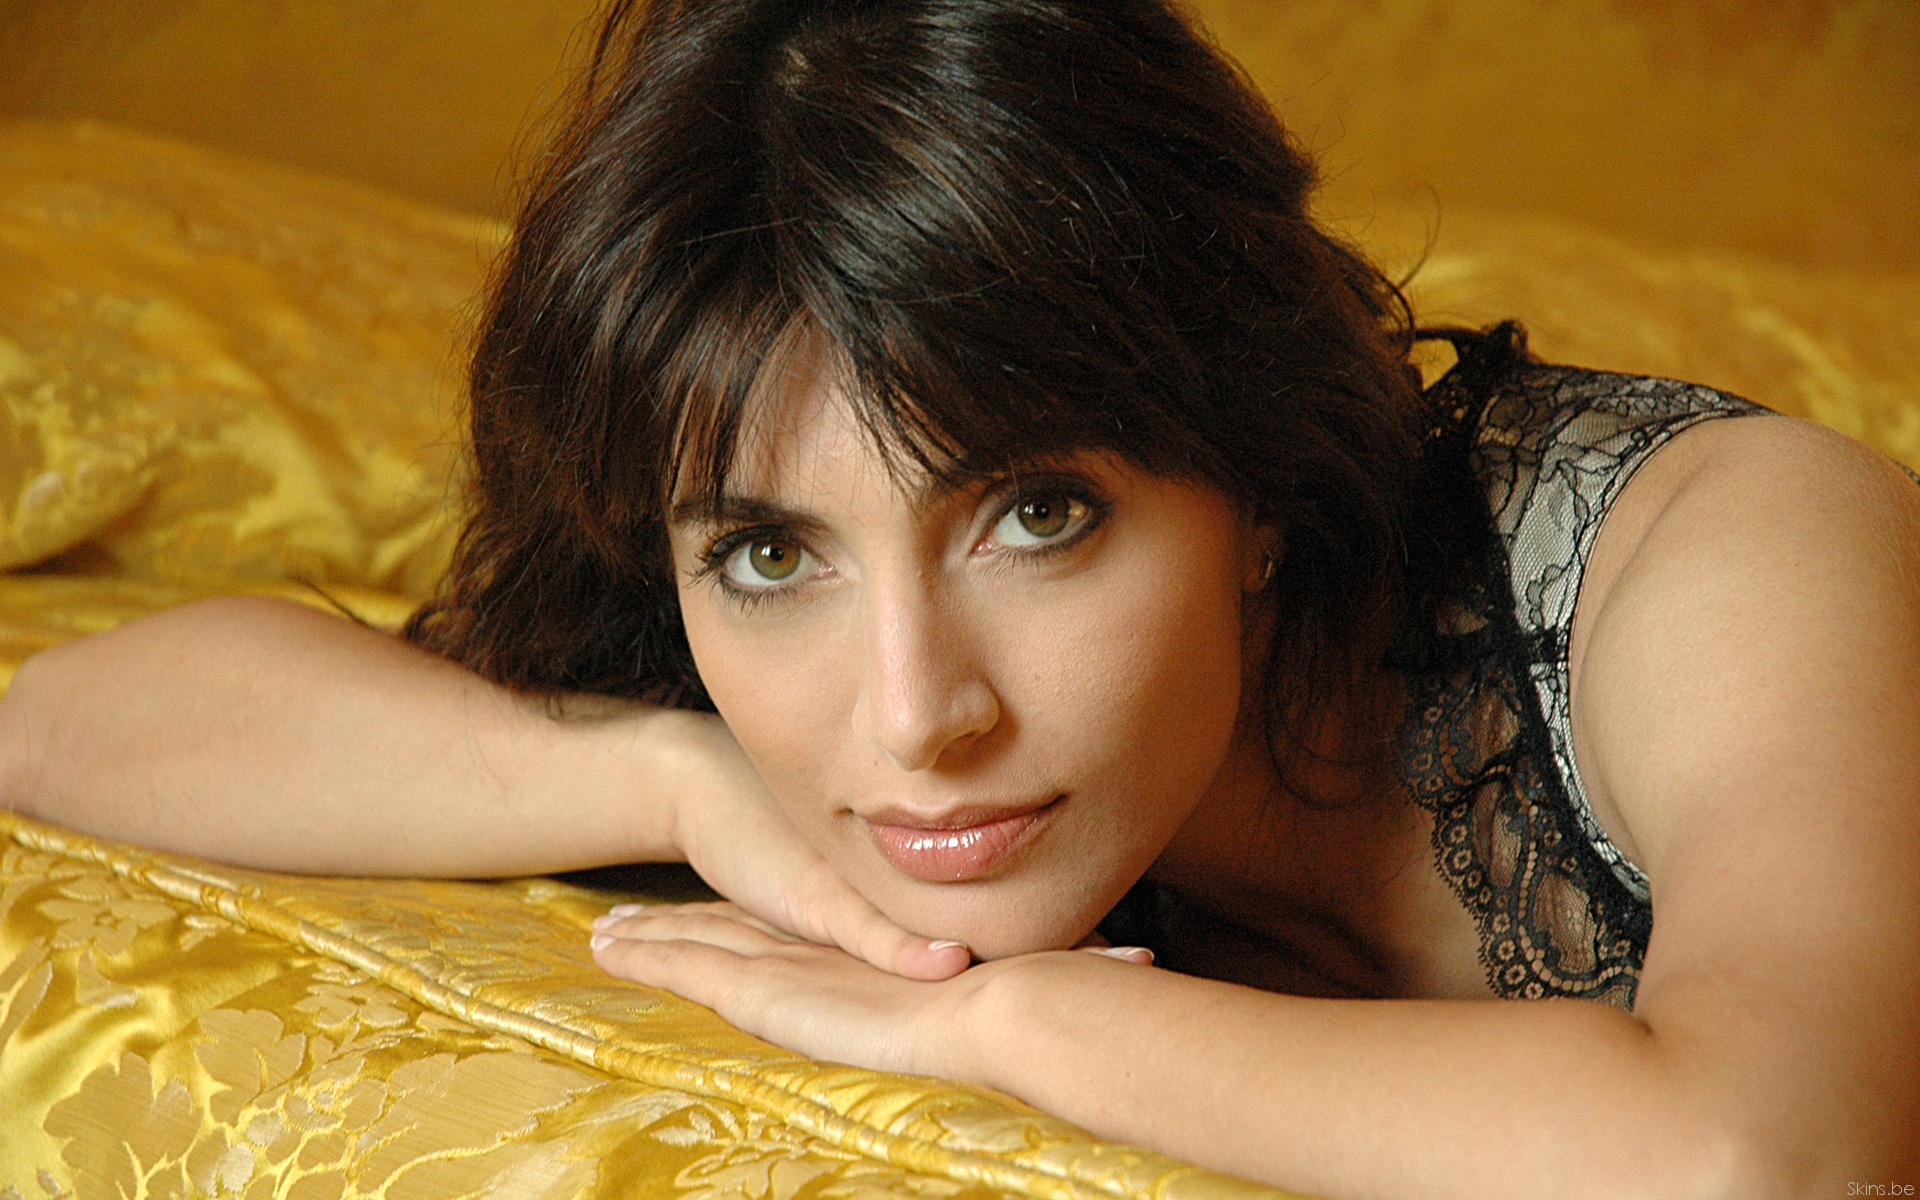 Images of Caterina Murino | 1920x1200